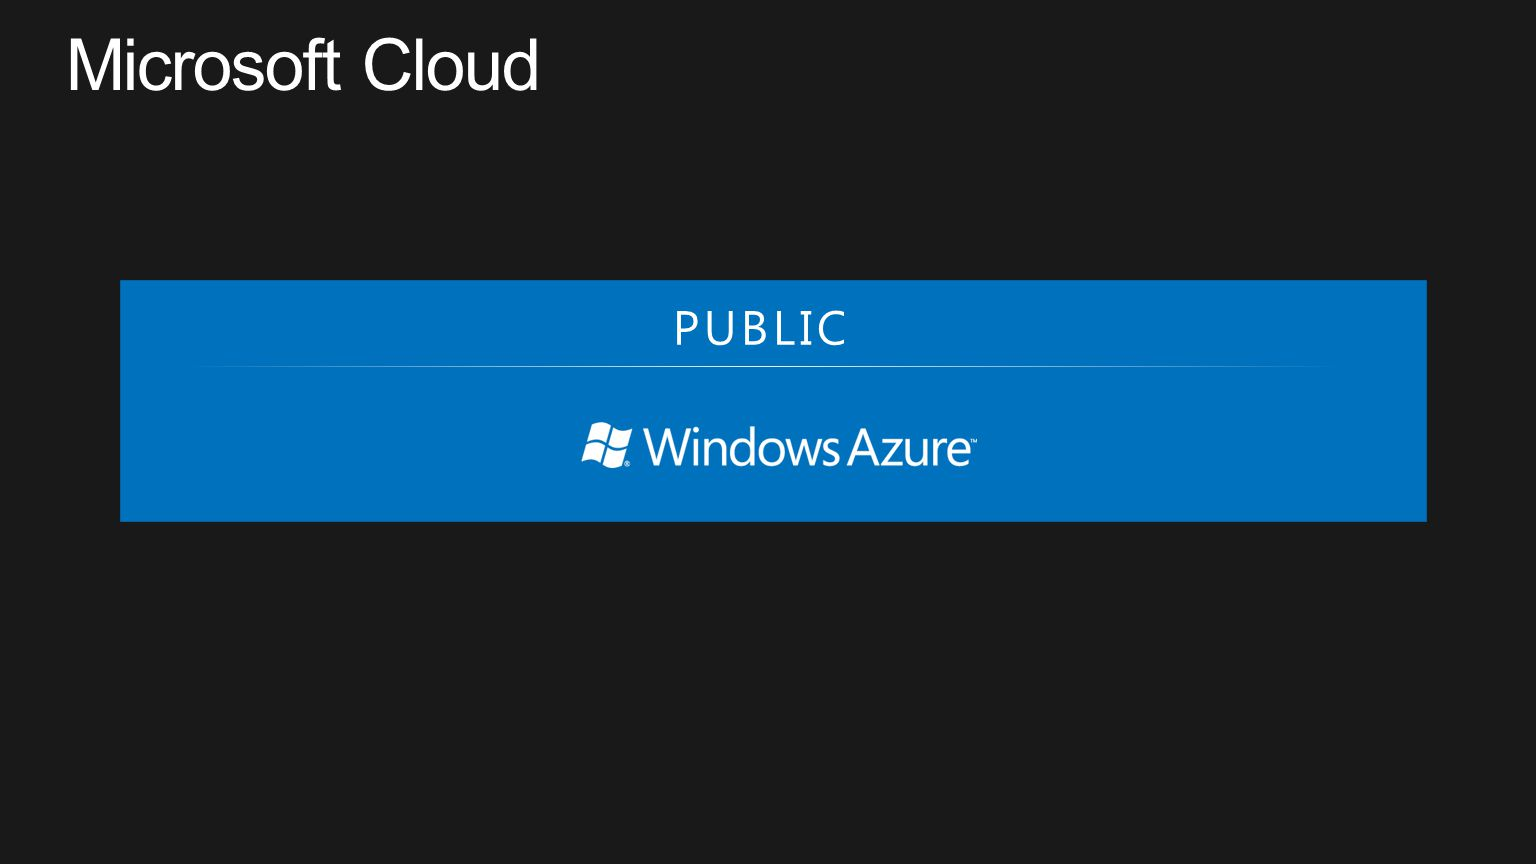 Microsoft Cloud PUBLIC